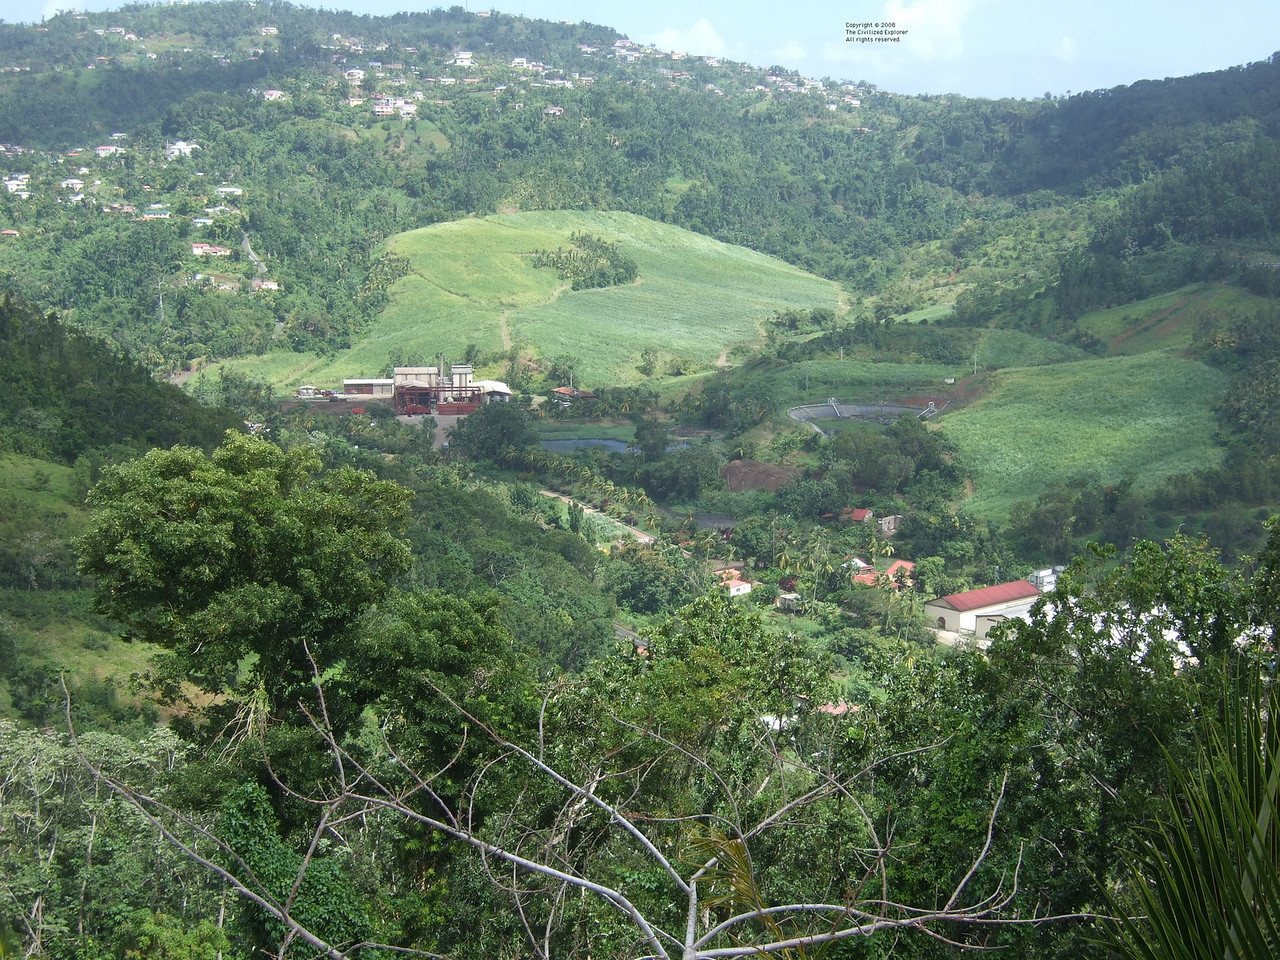 La Mauny Distillerie seen from an adjacent hill.